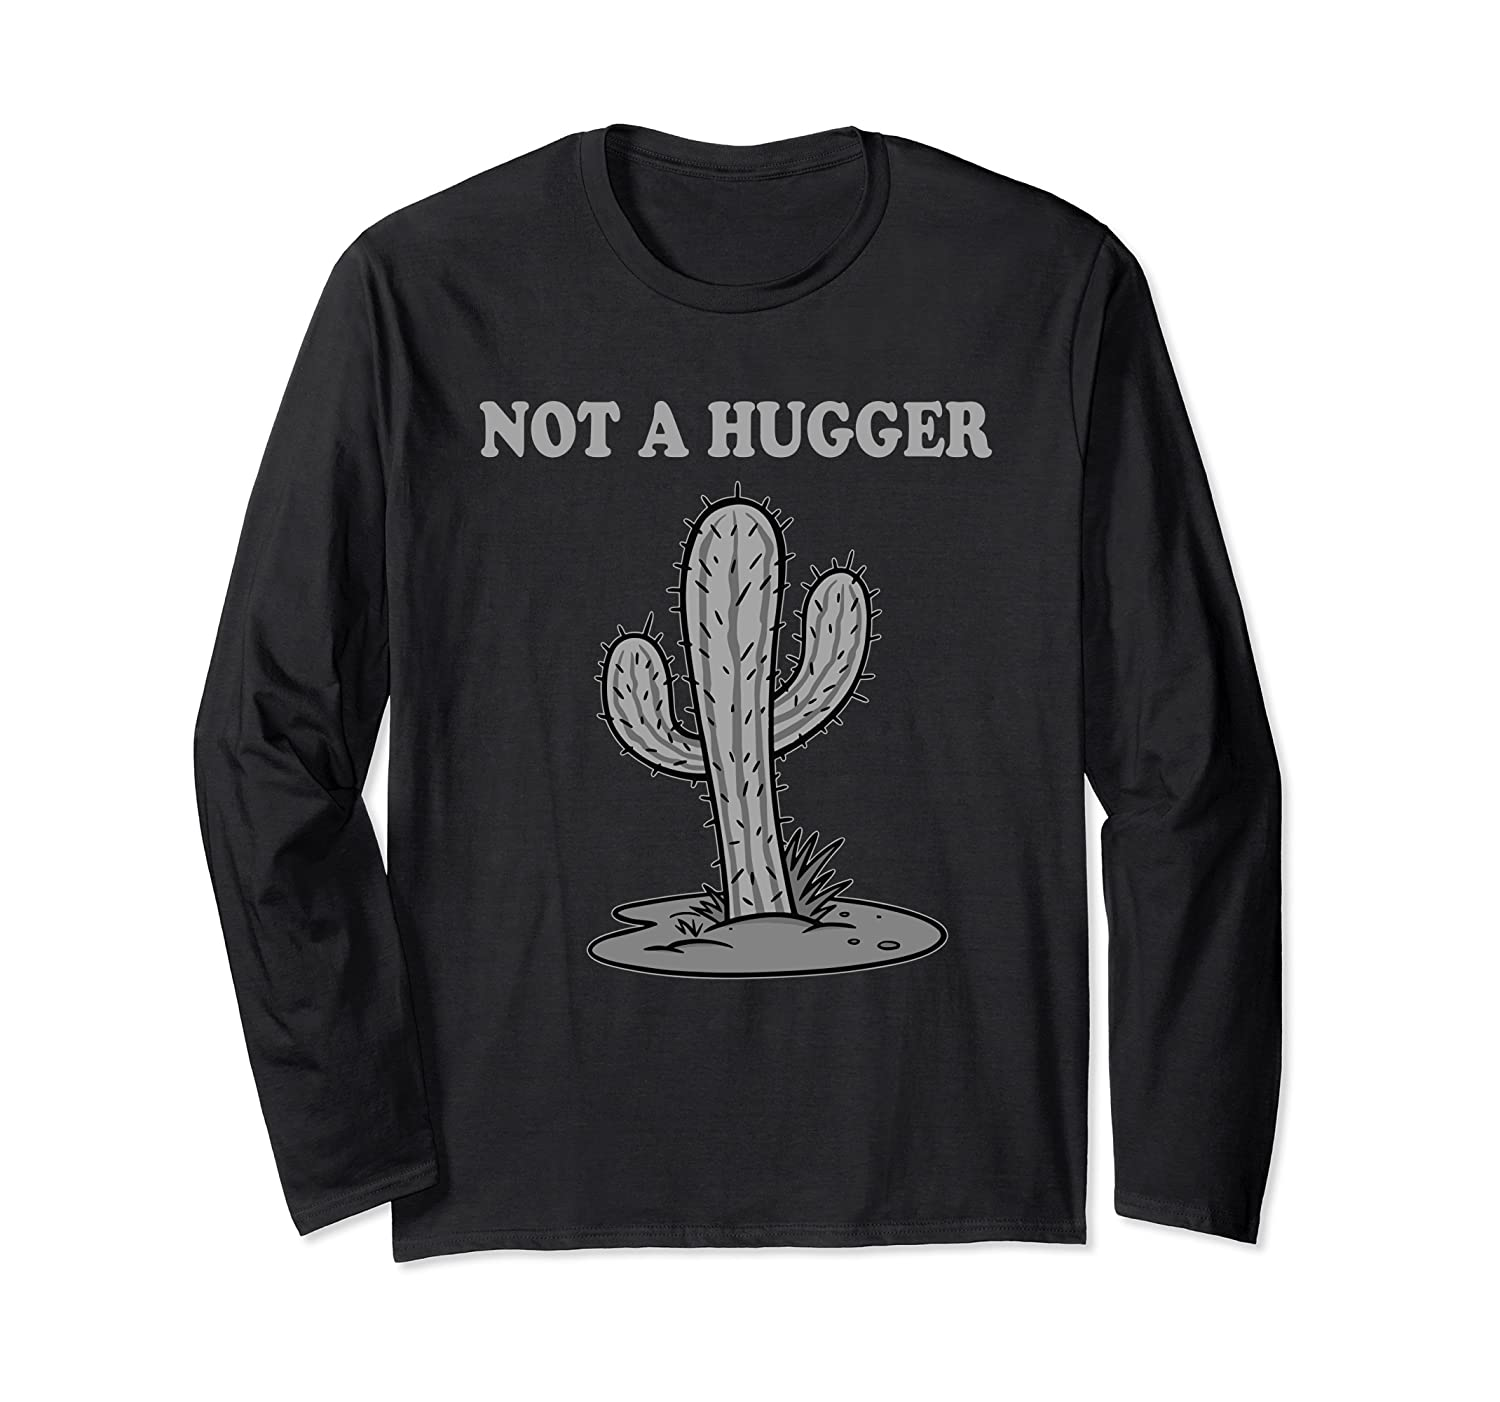 Not A Hugger Personal Space Funny Cactus Saying Ls Shirts